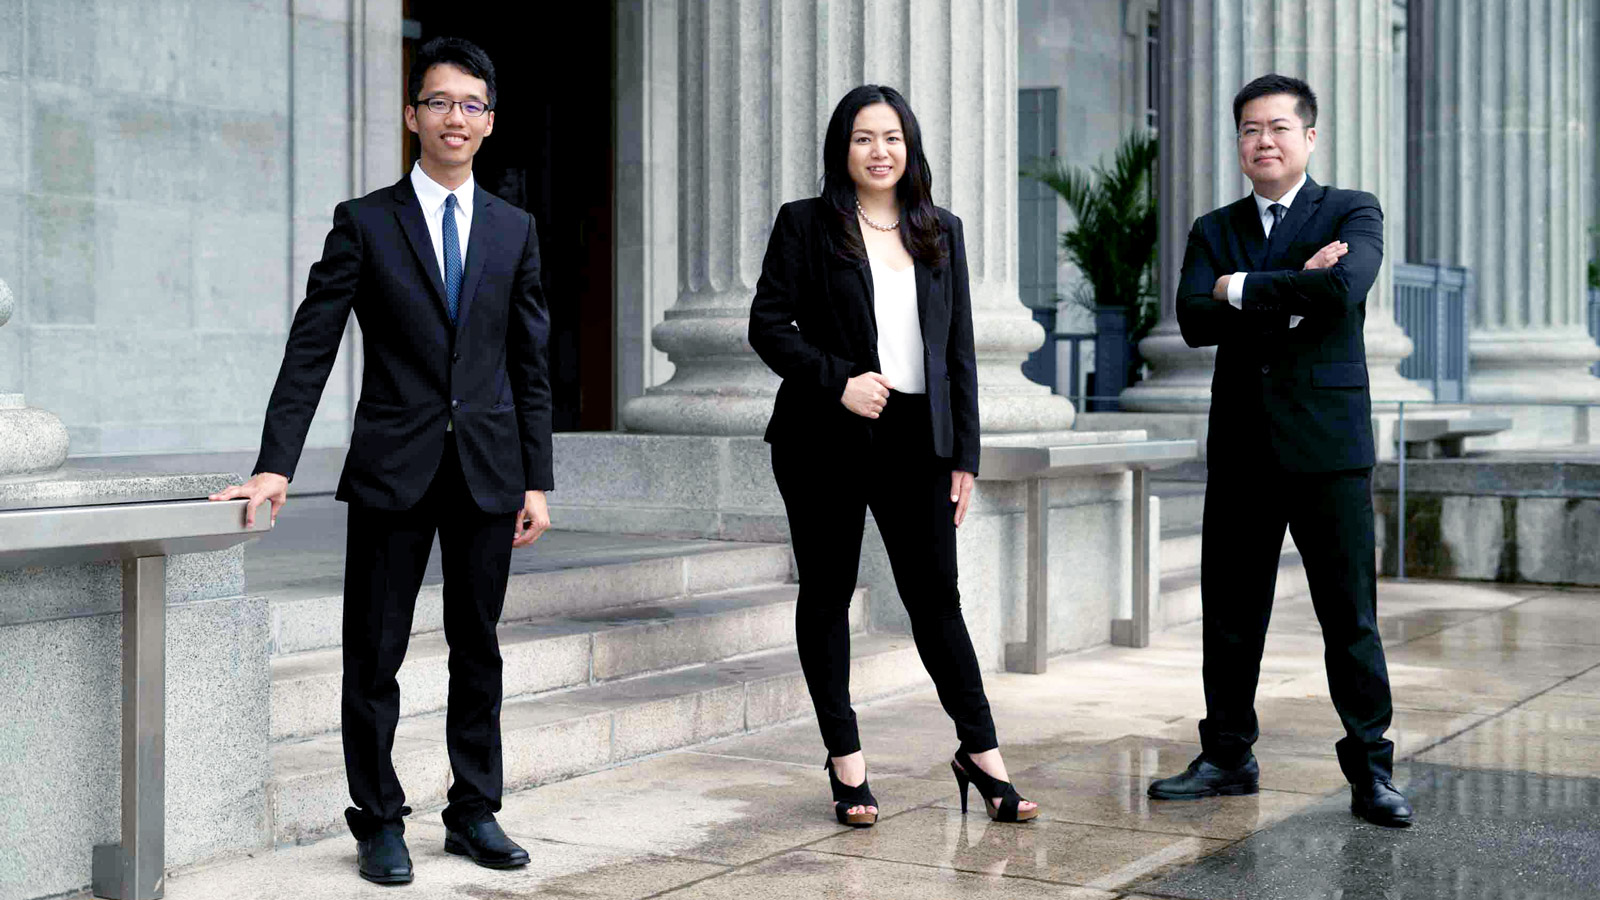 John Lim, Peggy Neo, Alvin Sia, Limn Law Team Members